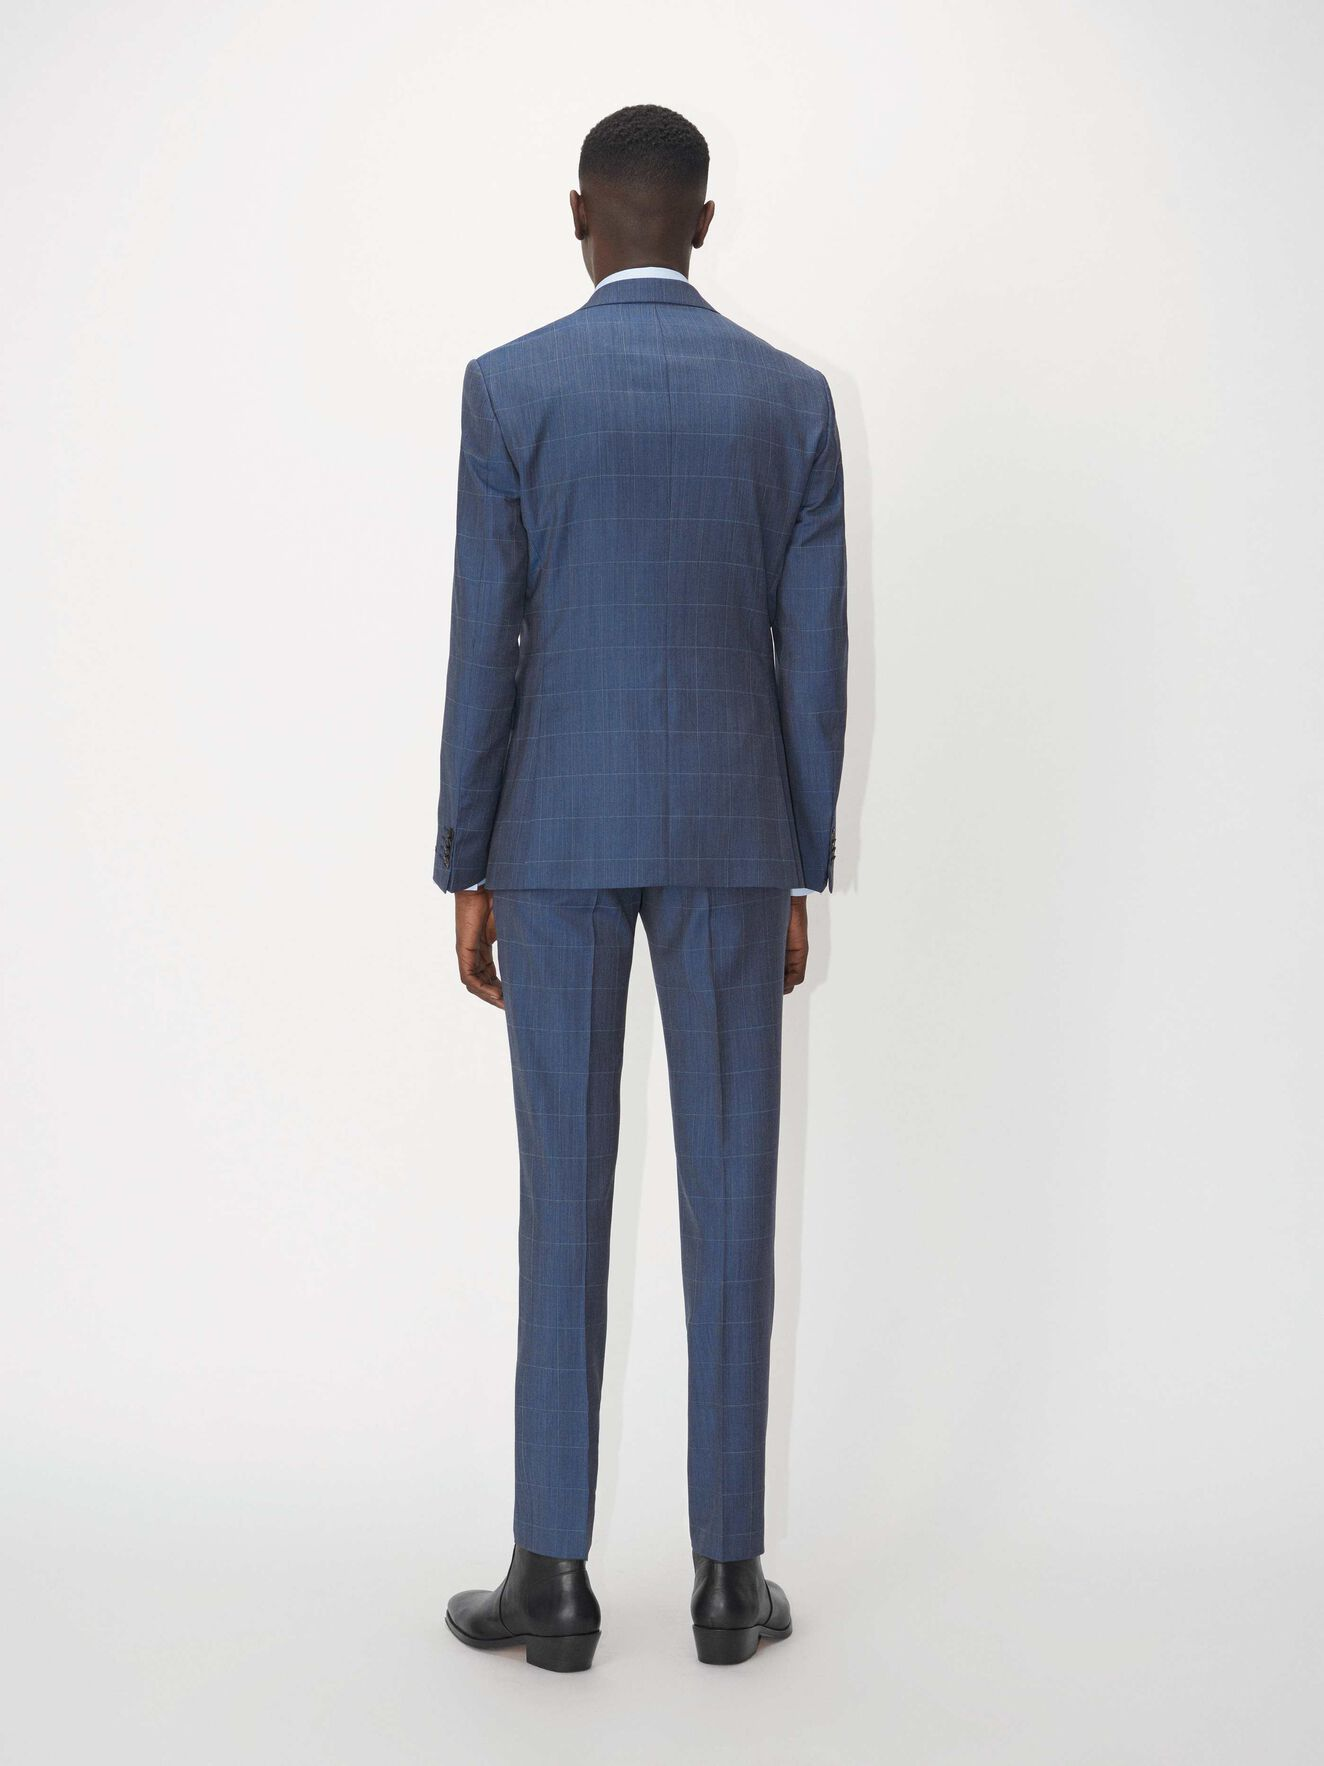 S.Jamonte Suit in Port Blue from Tiger of Sweden